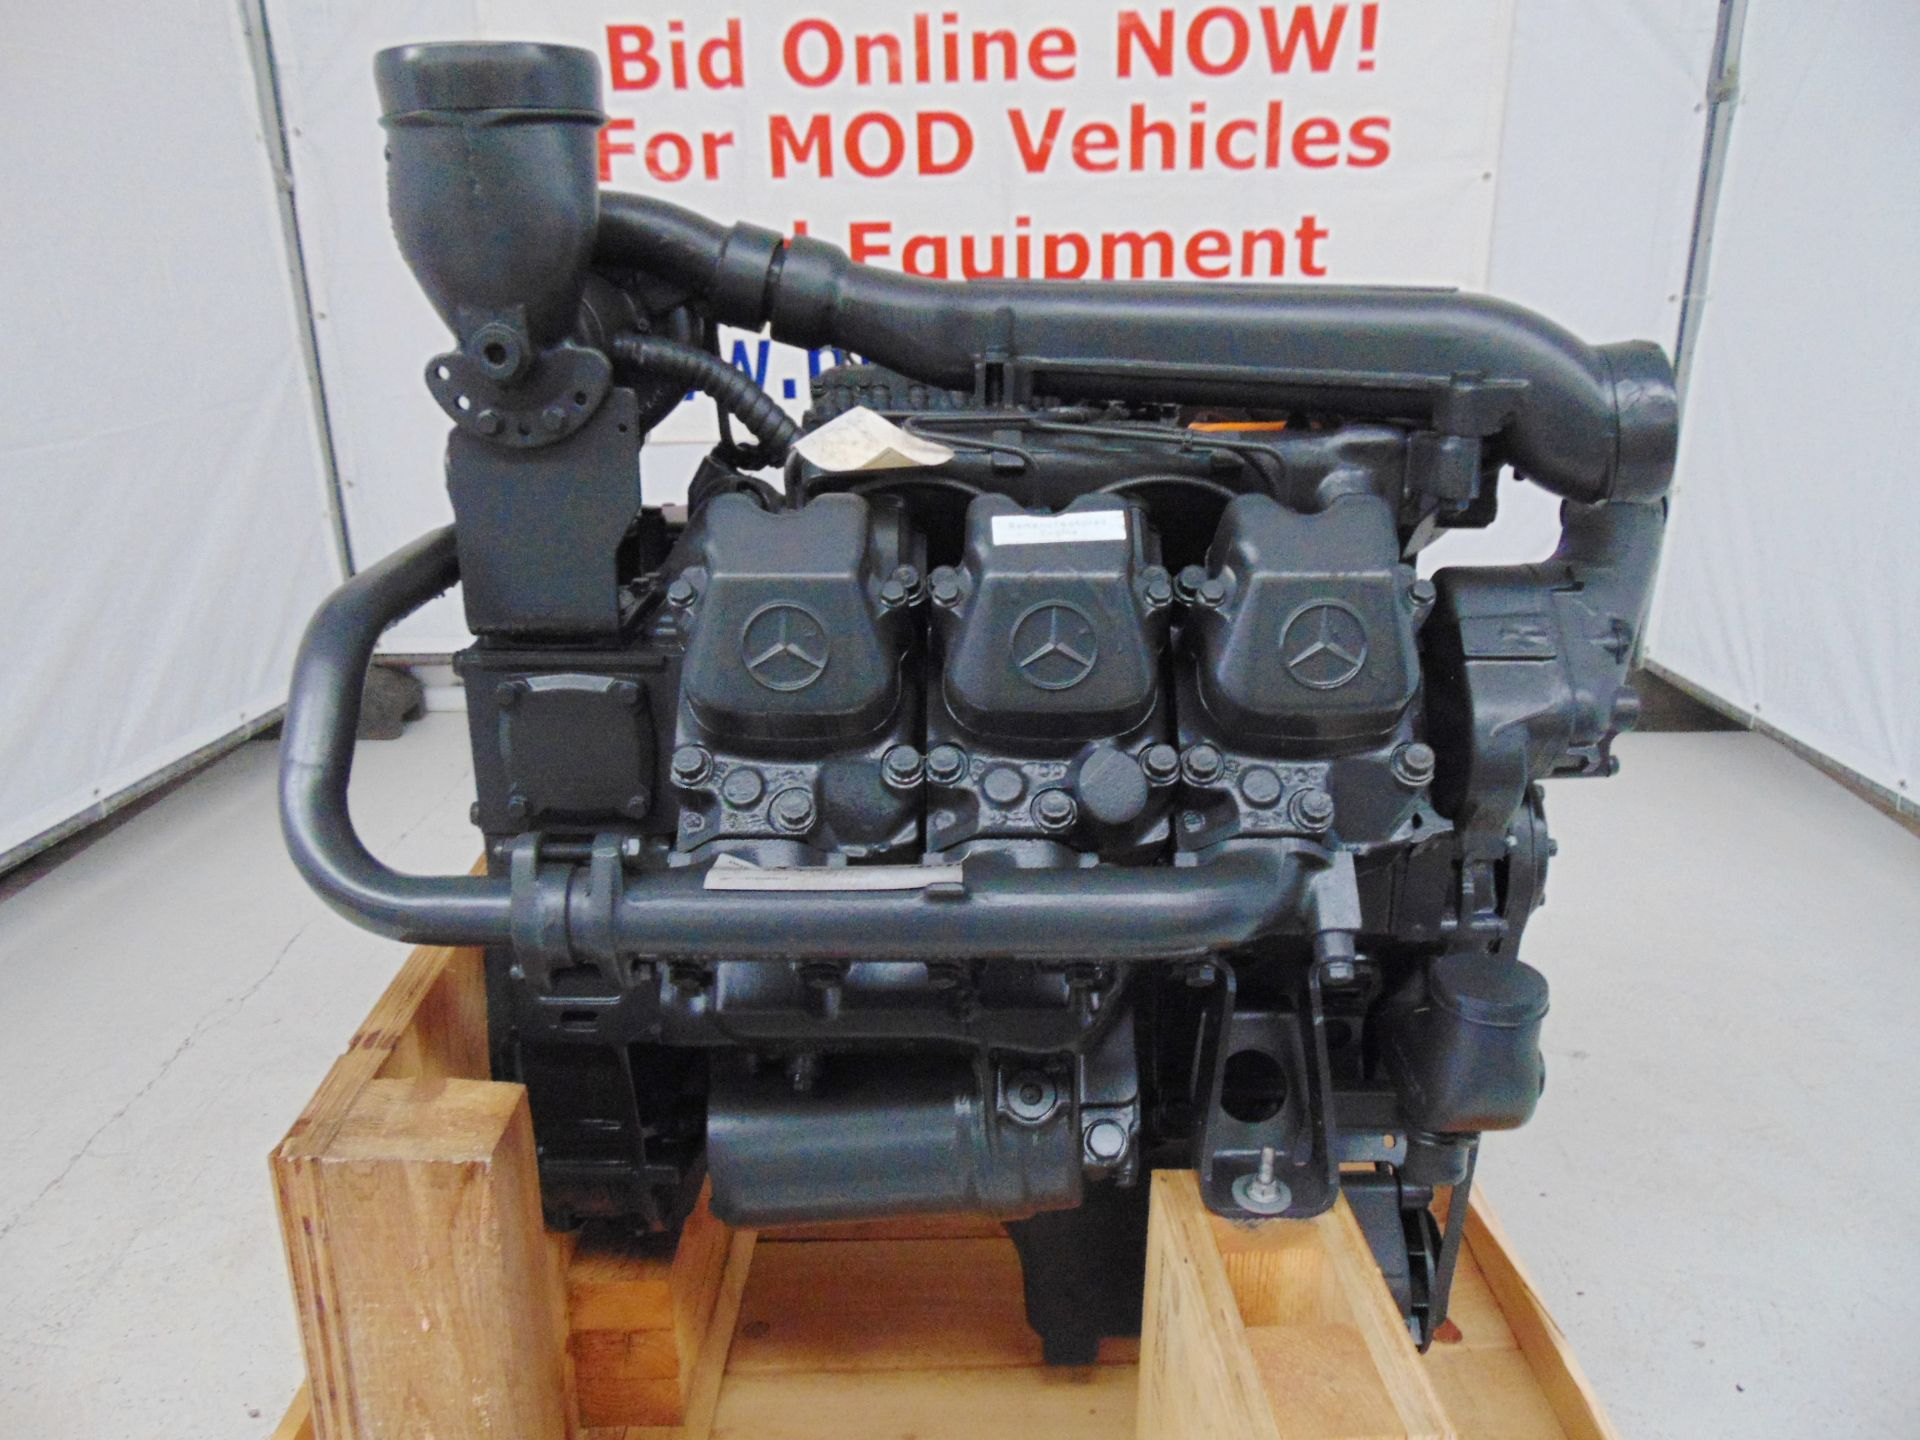 Lot 2 - Factory Reconditioned Mercedes-Benz OM441 V6 Turbo Diesel Engine